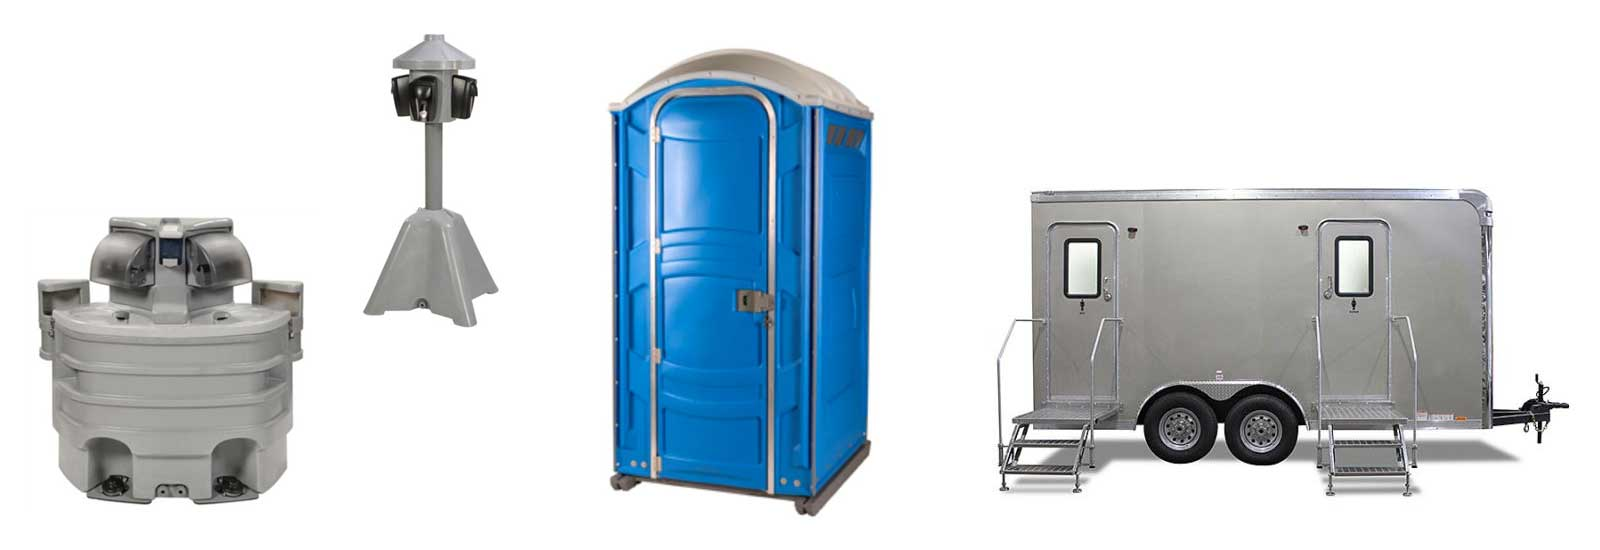 Portable toilet rentals in South Texas and Central Texas